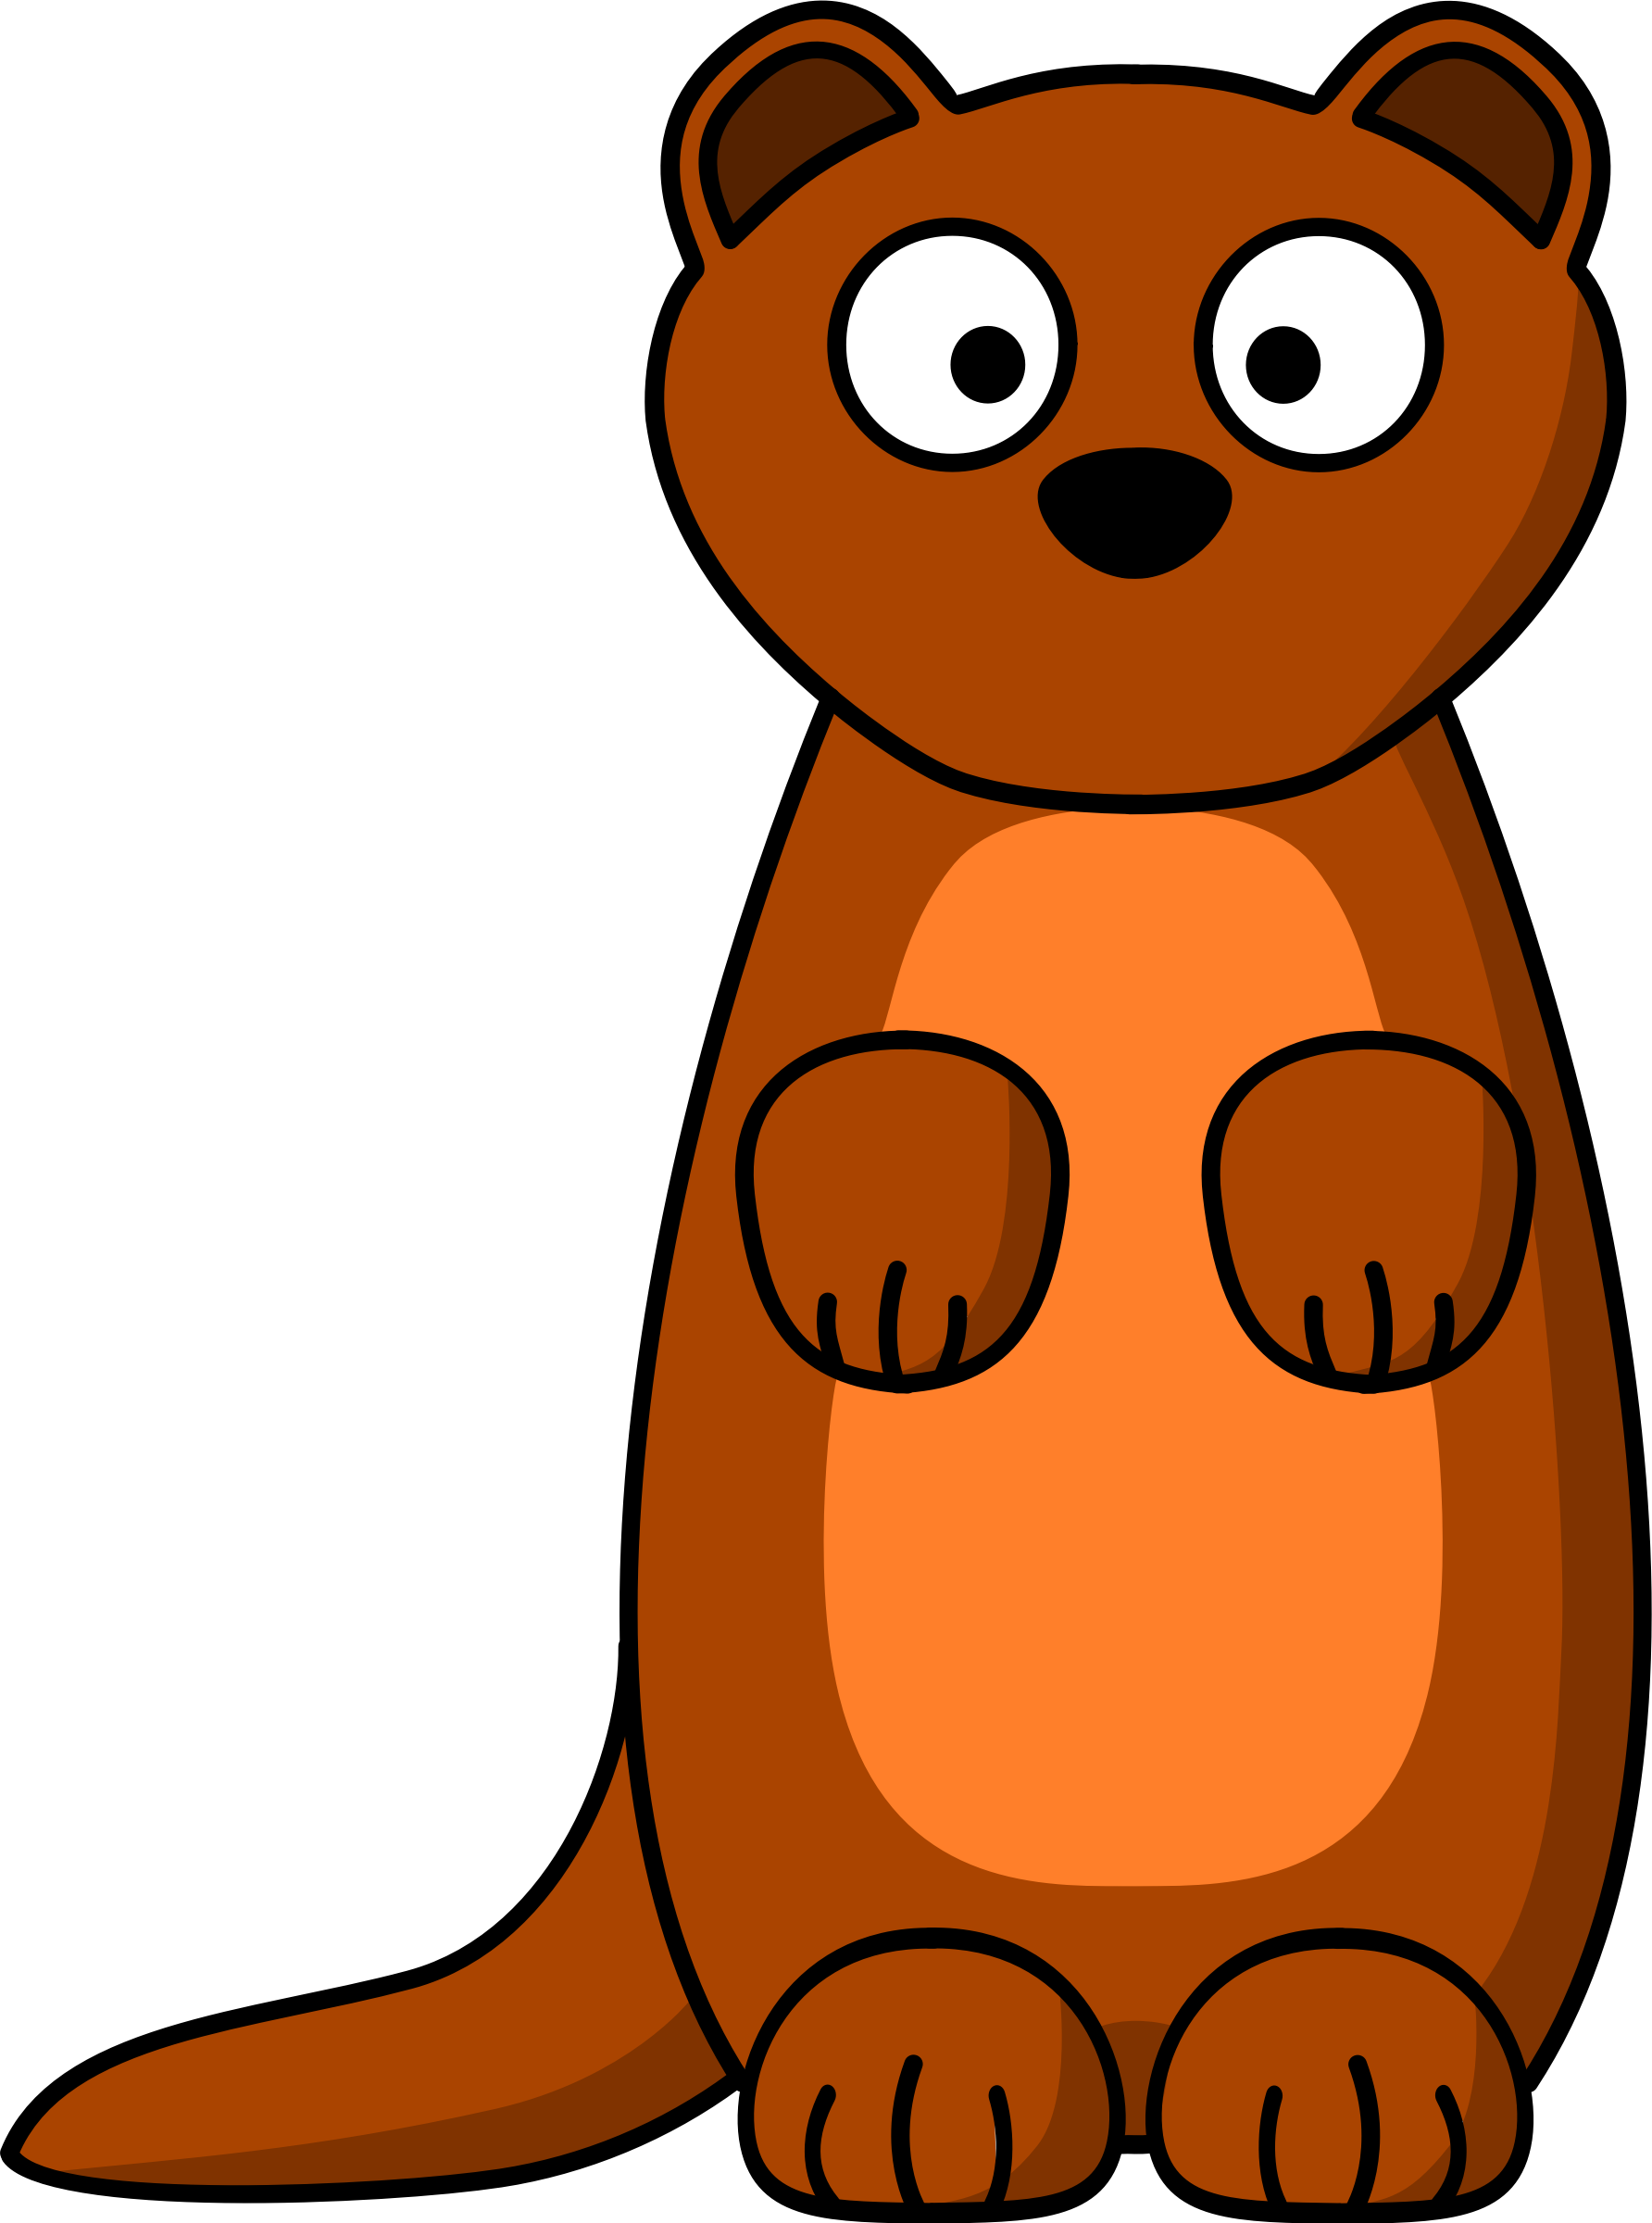 Weasel funny clipart picture free stock Cartoon Weasel by @Schplook, Cartoon weasel (or ferret, or ... picture free stock